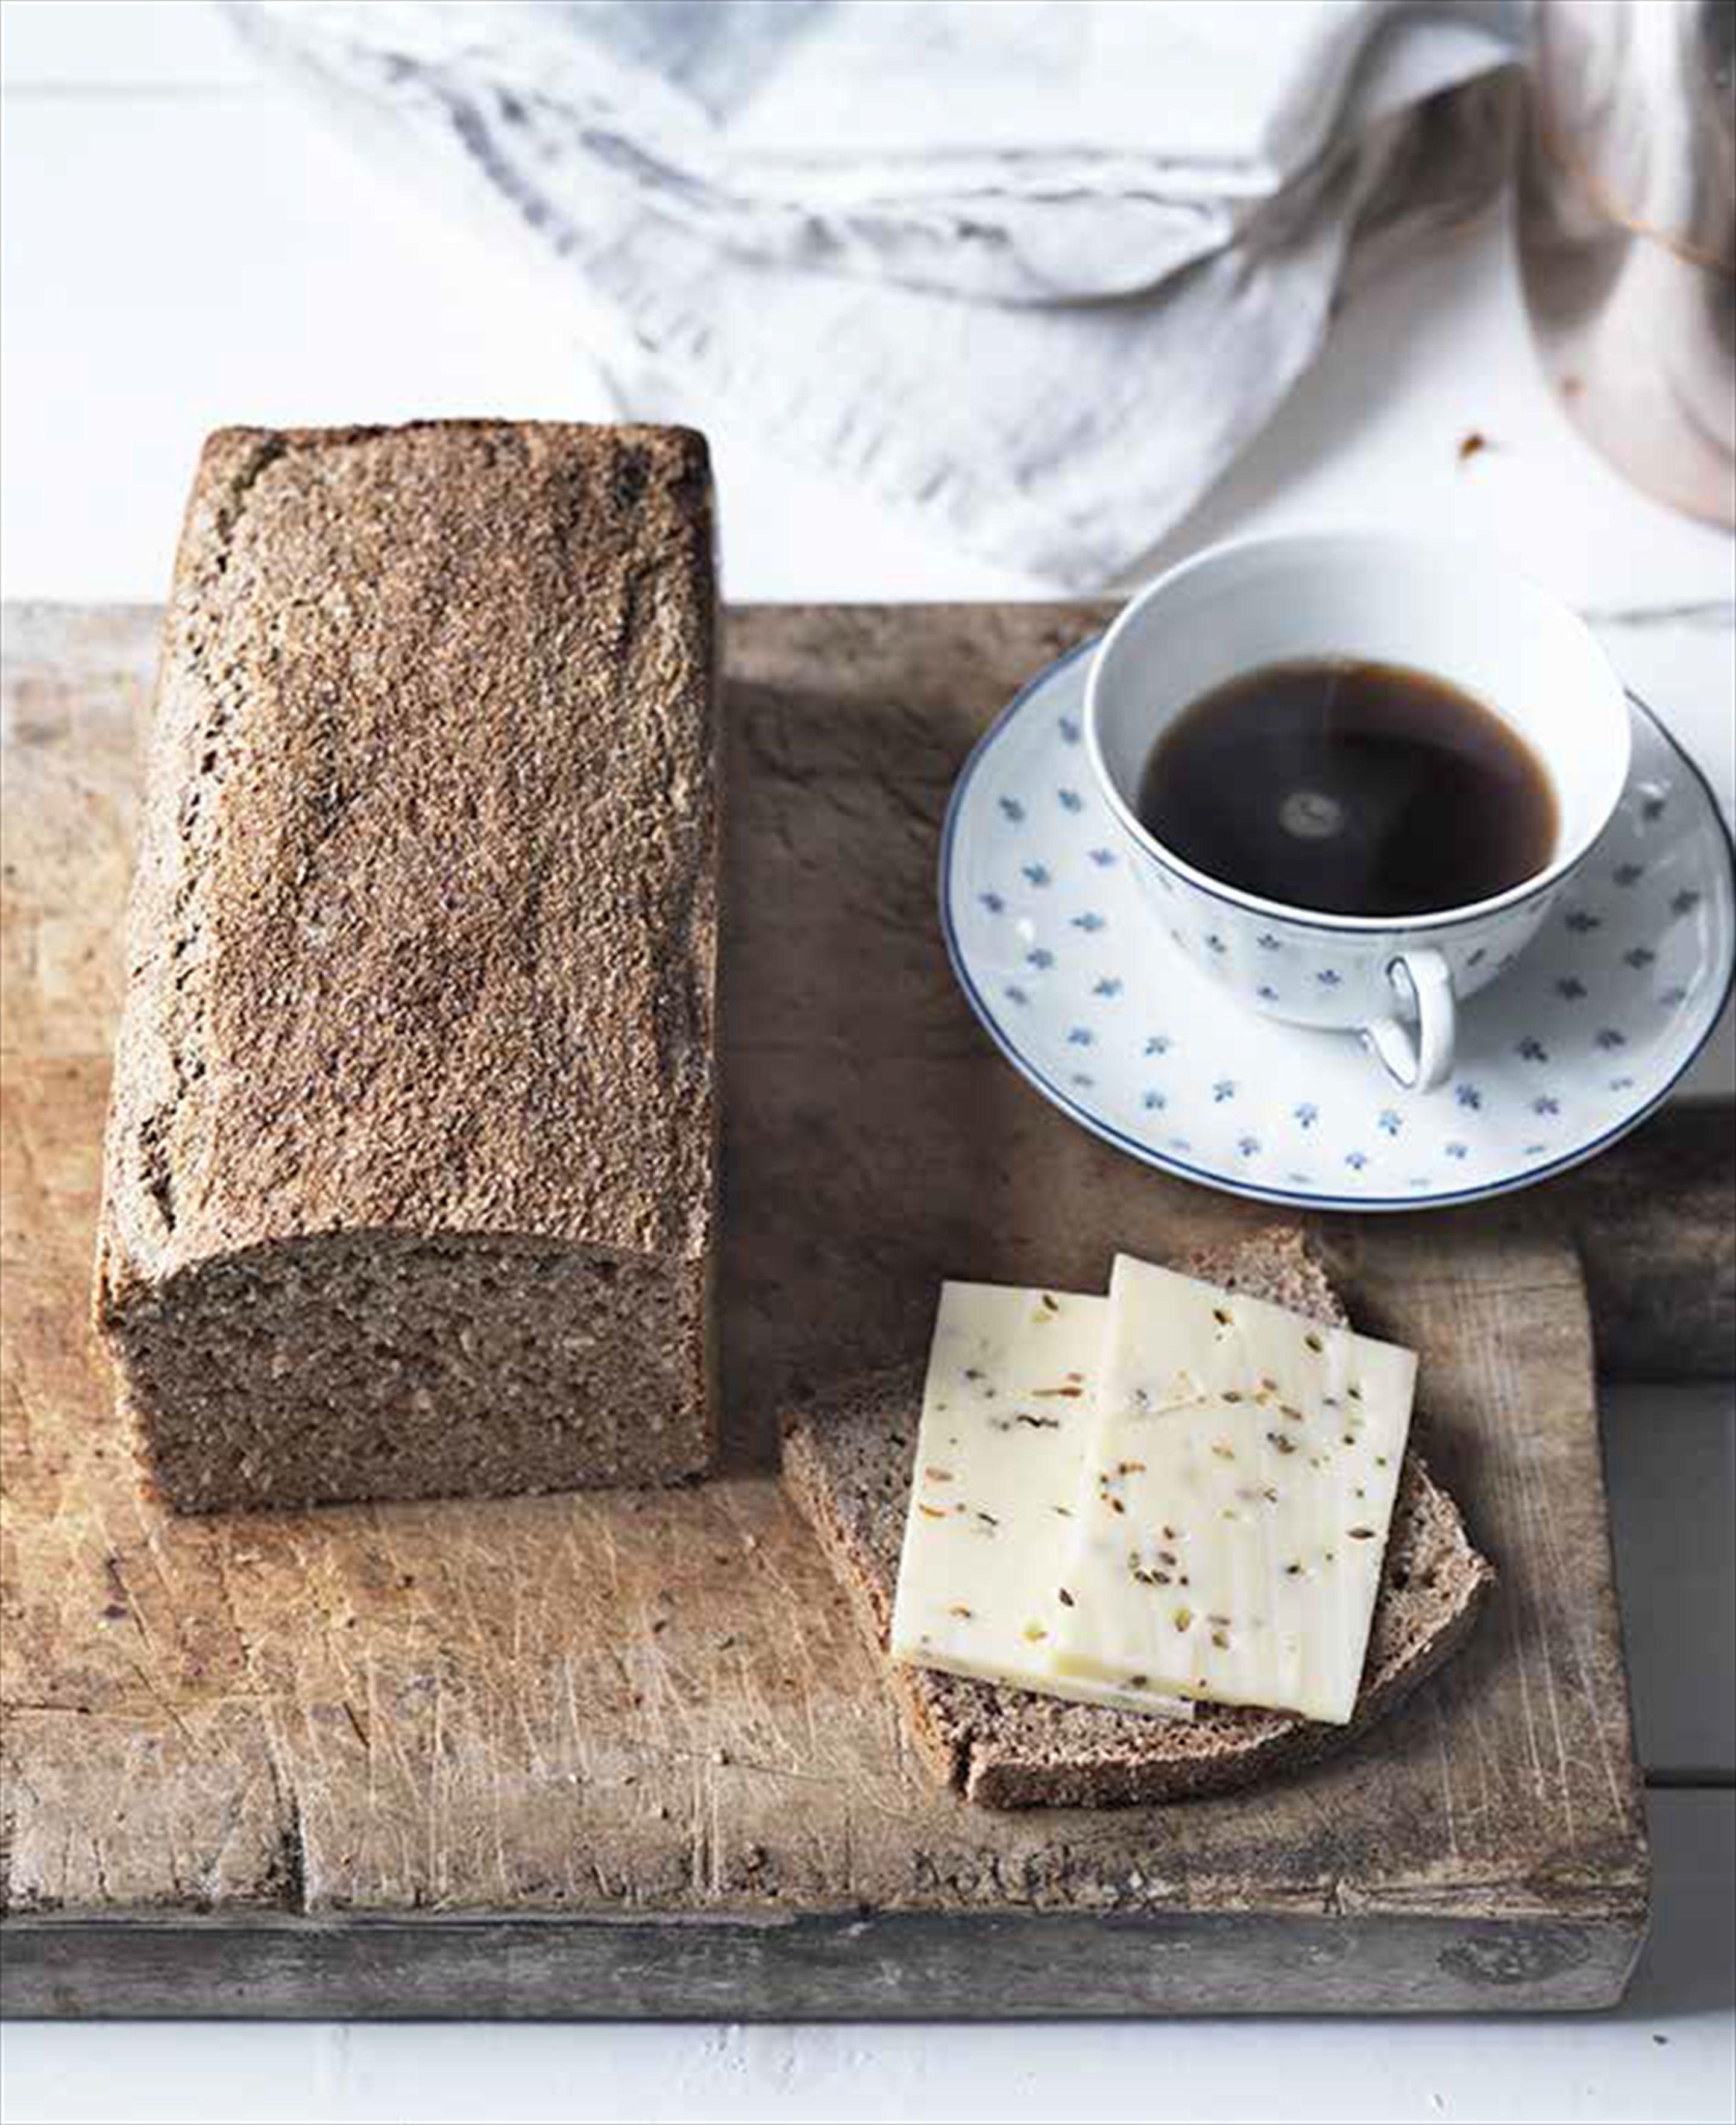 Classic coarse wholemeal bread (Grahamsbrød) from my childhood